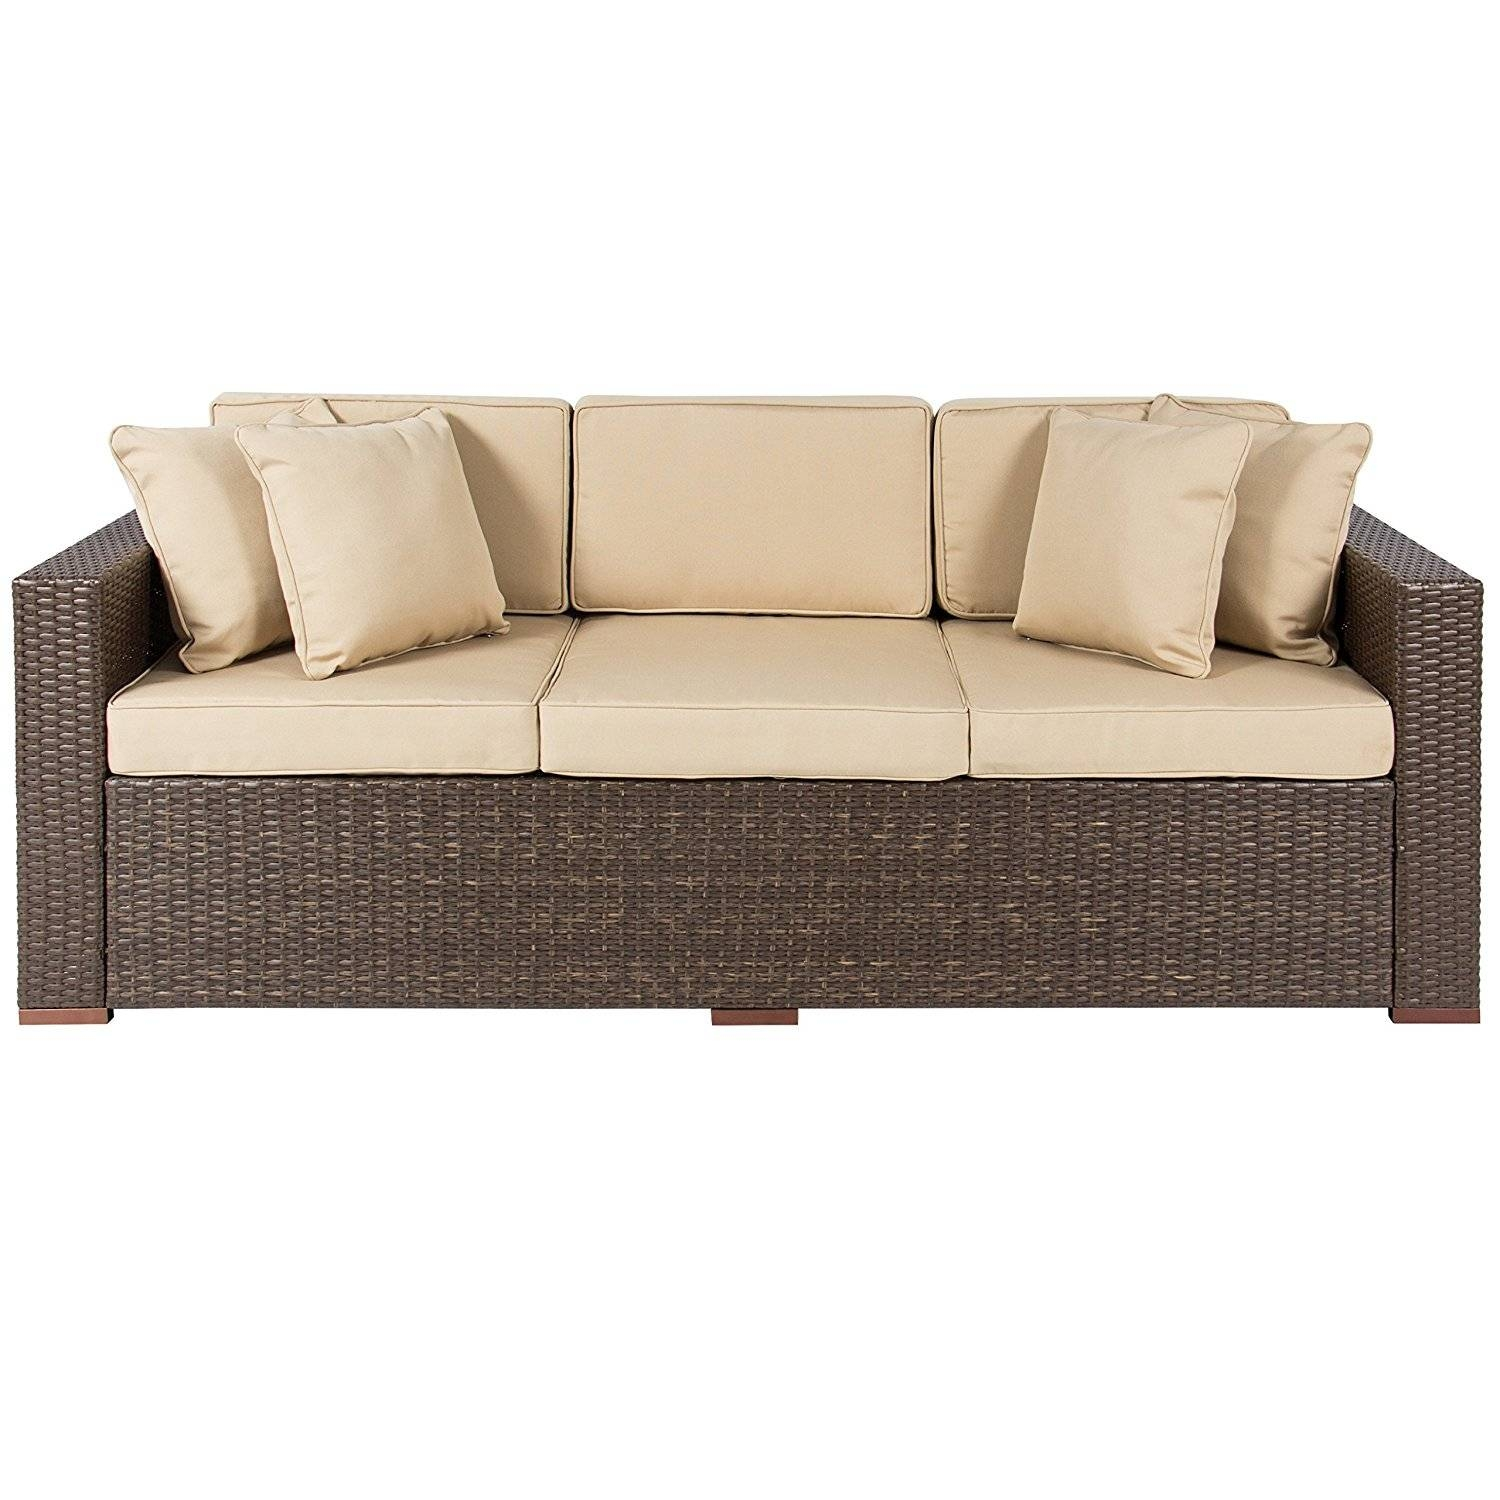 Sofas Center : H0117Us Nv07 Wicker Outdoor Sofa Table Sets Bodega inside Patio Sofa Tables (Image 28 of 30)